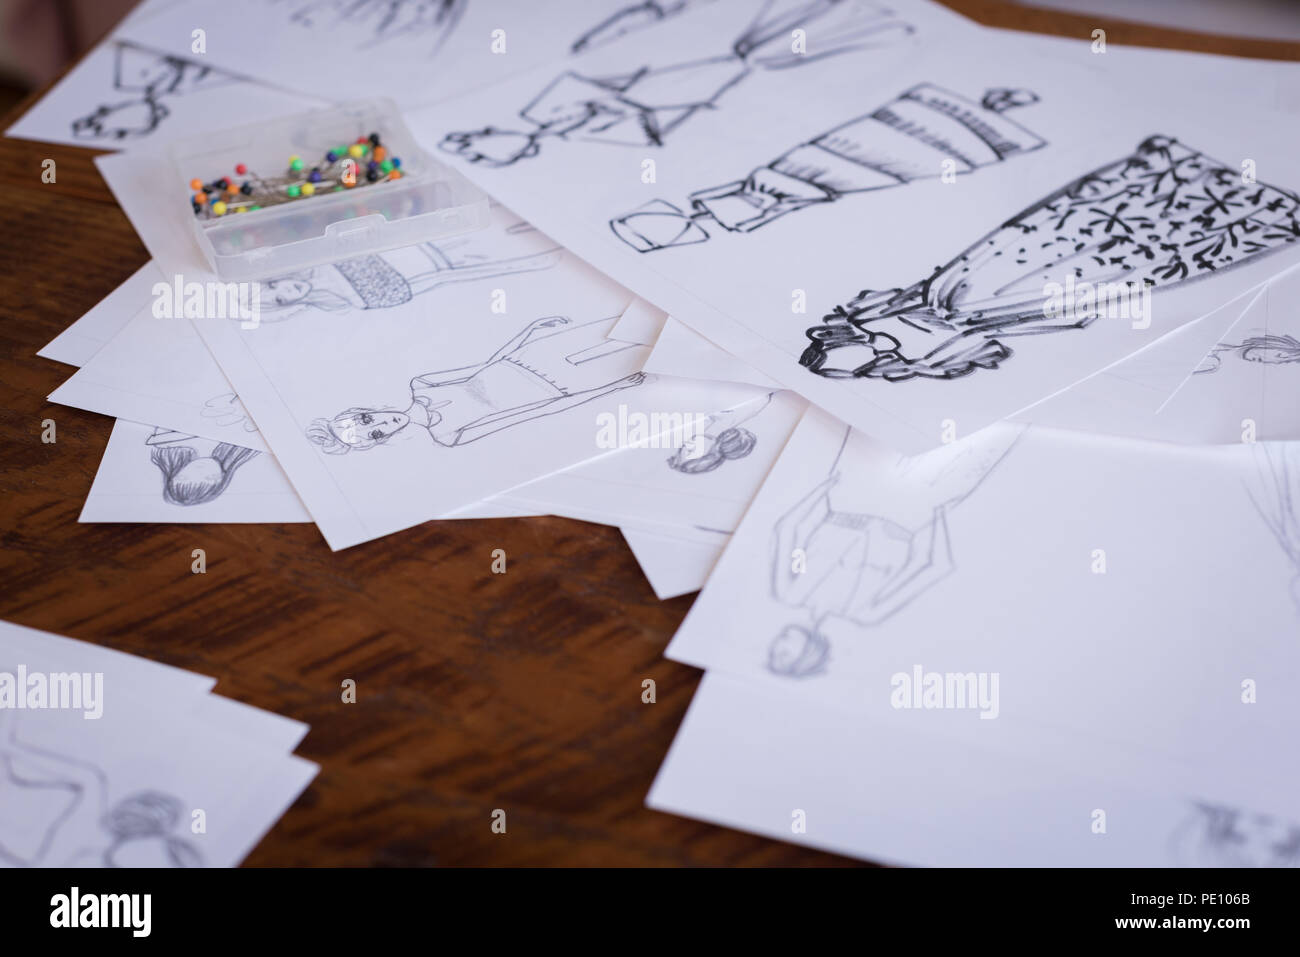 Esquisses de design sur table dans le studio Photo Stock